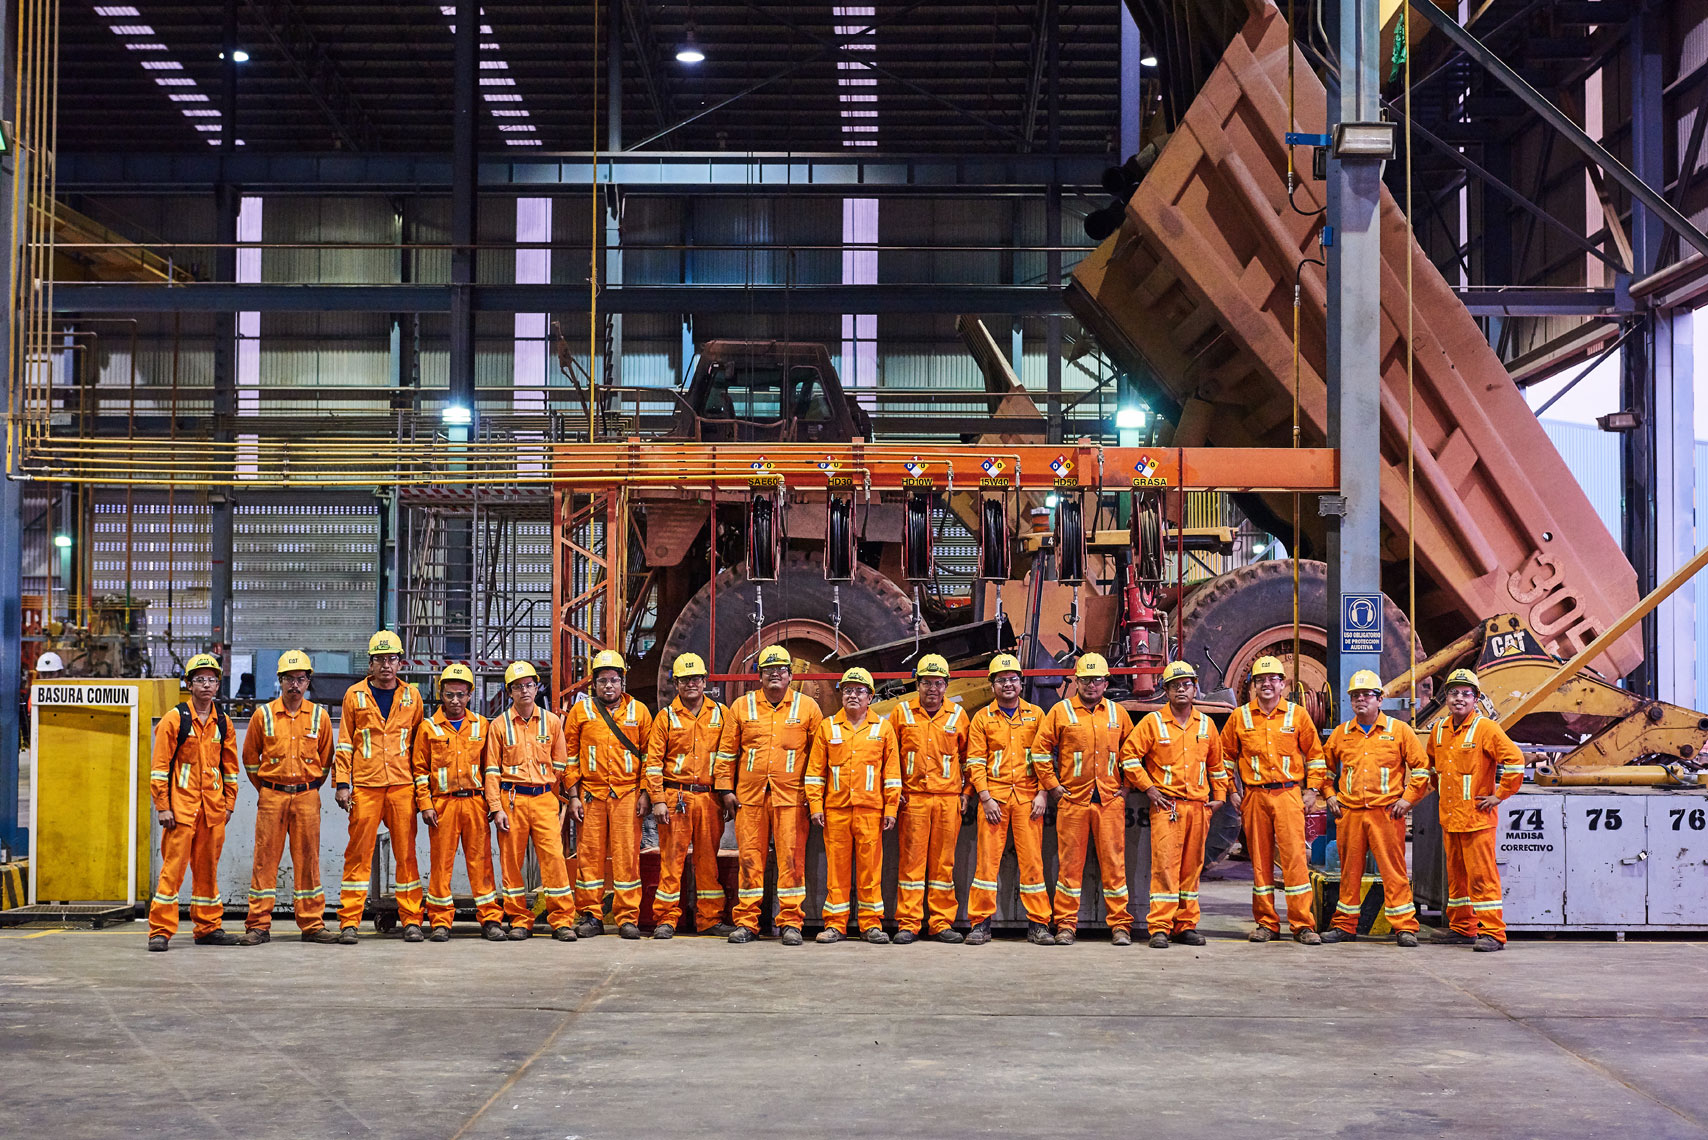 2017-Vancouver-Corporate-Photographer-ErichSaide-Mining-Leagold-Workshop-Group